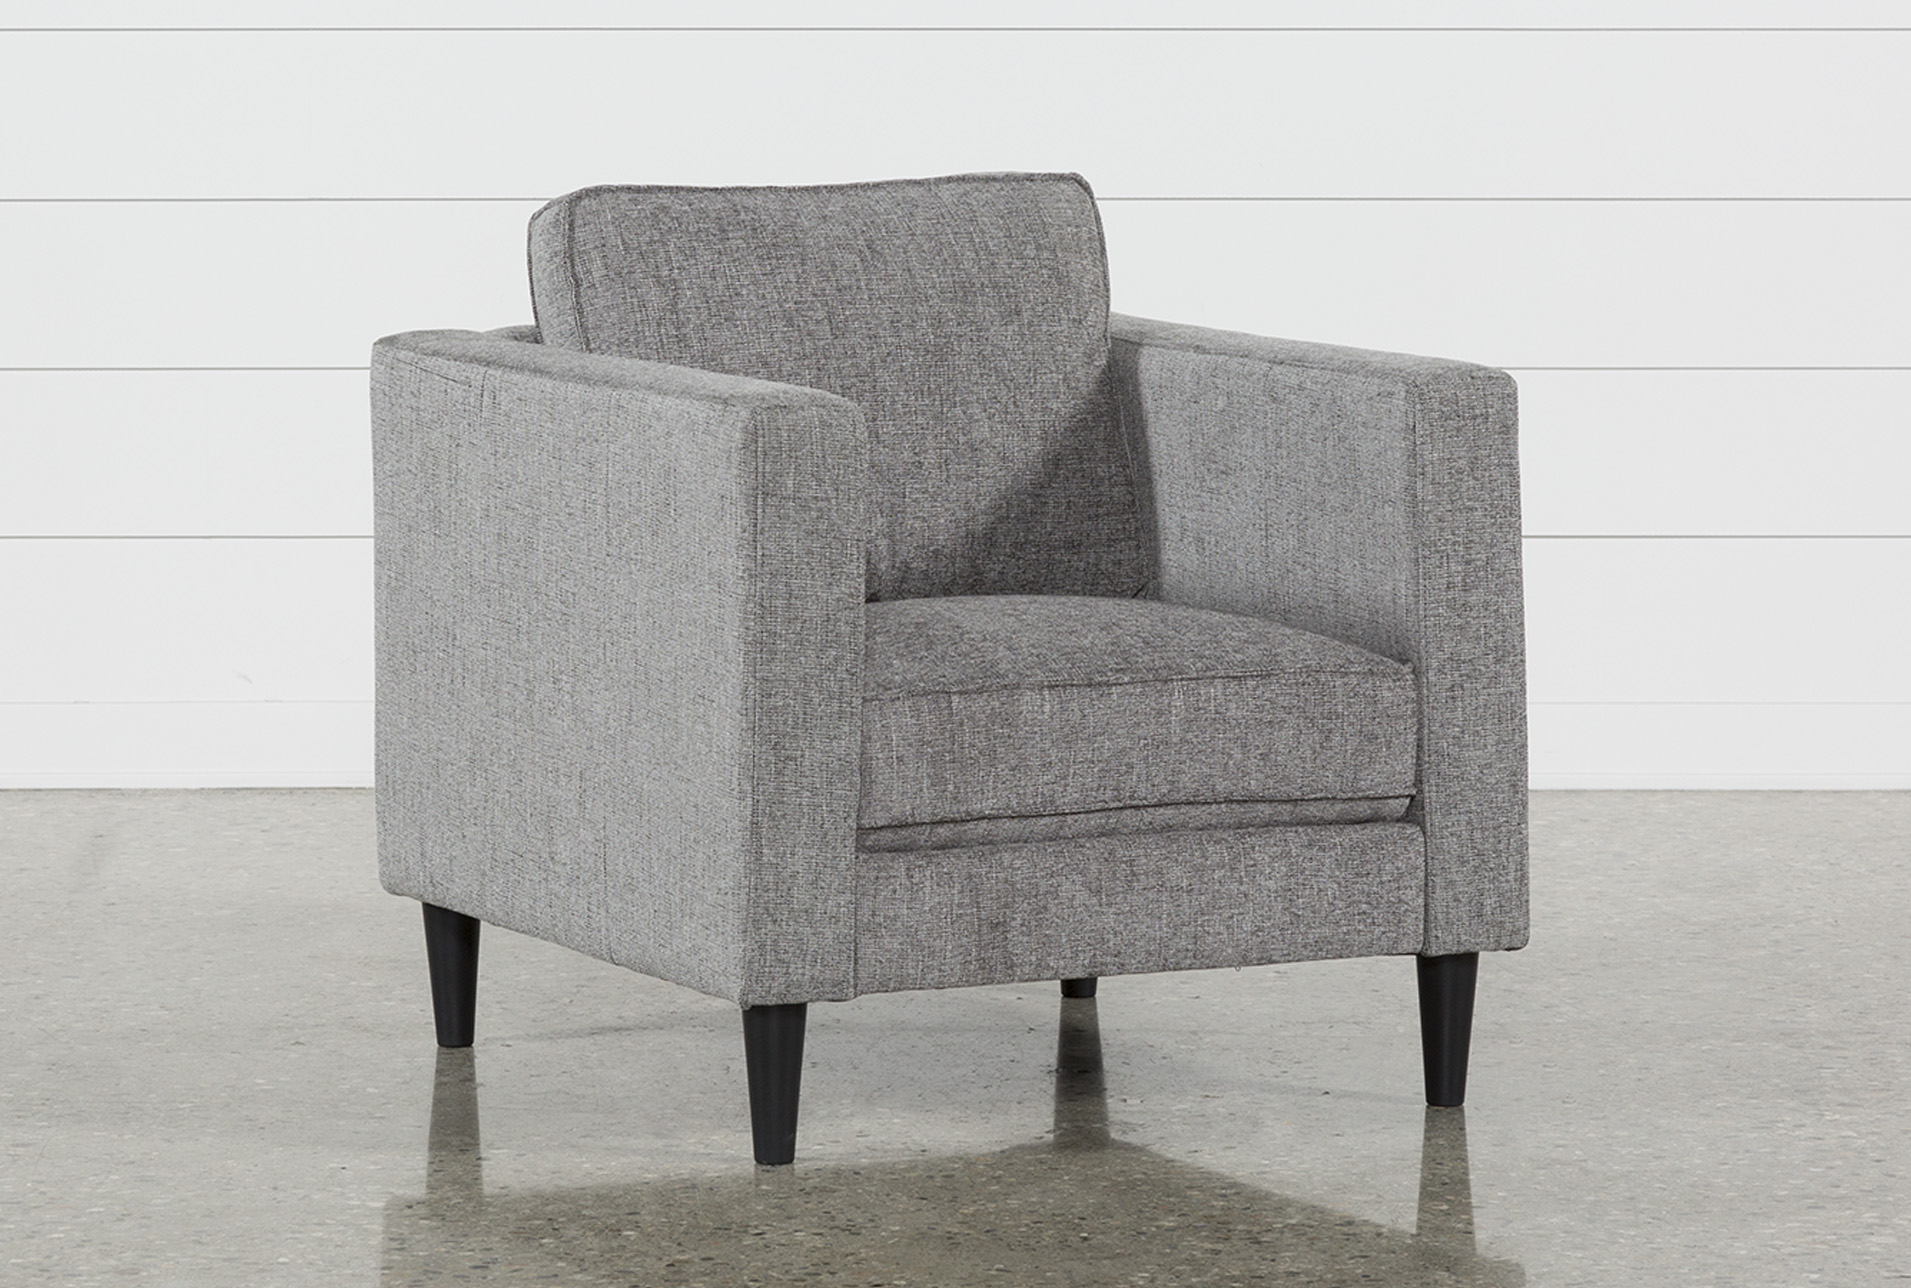 Cosmos Grey Chair (Qty: 1) Has Been Successfully Added To Your Cart.